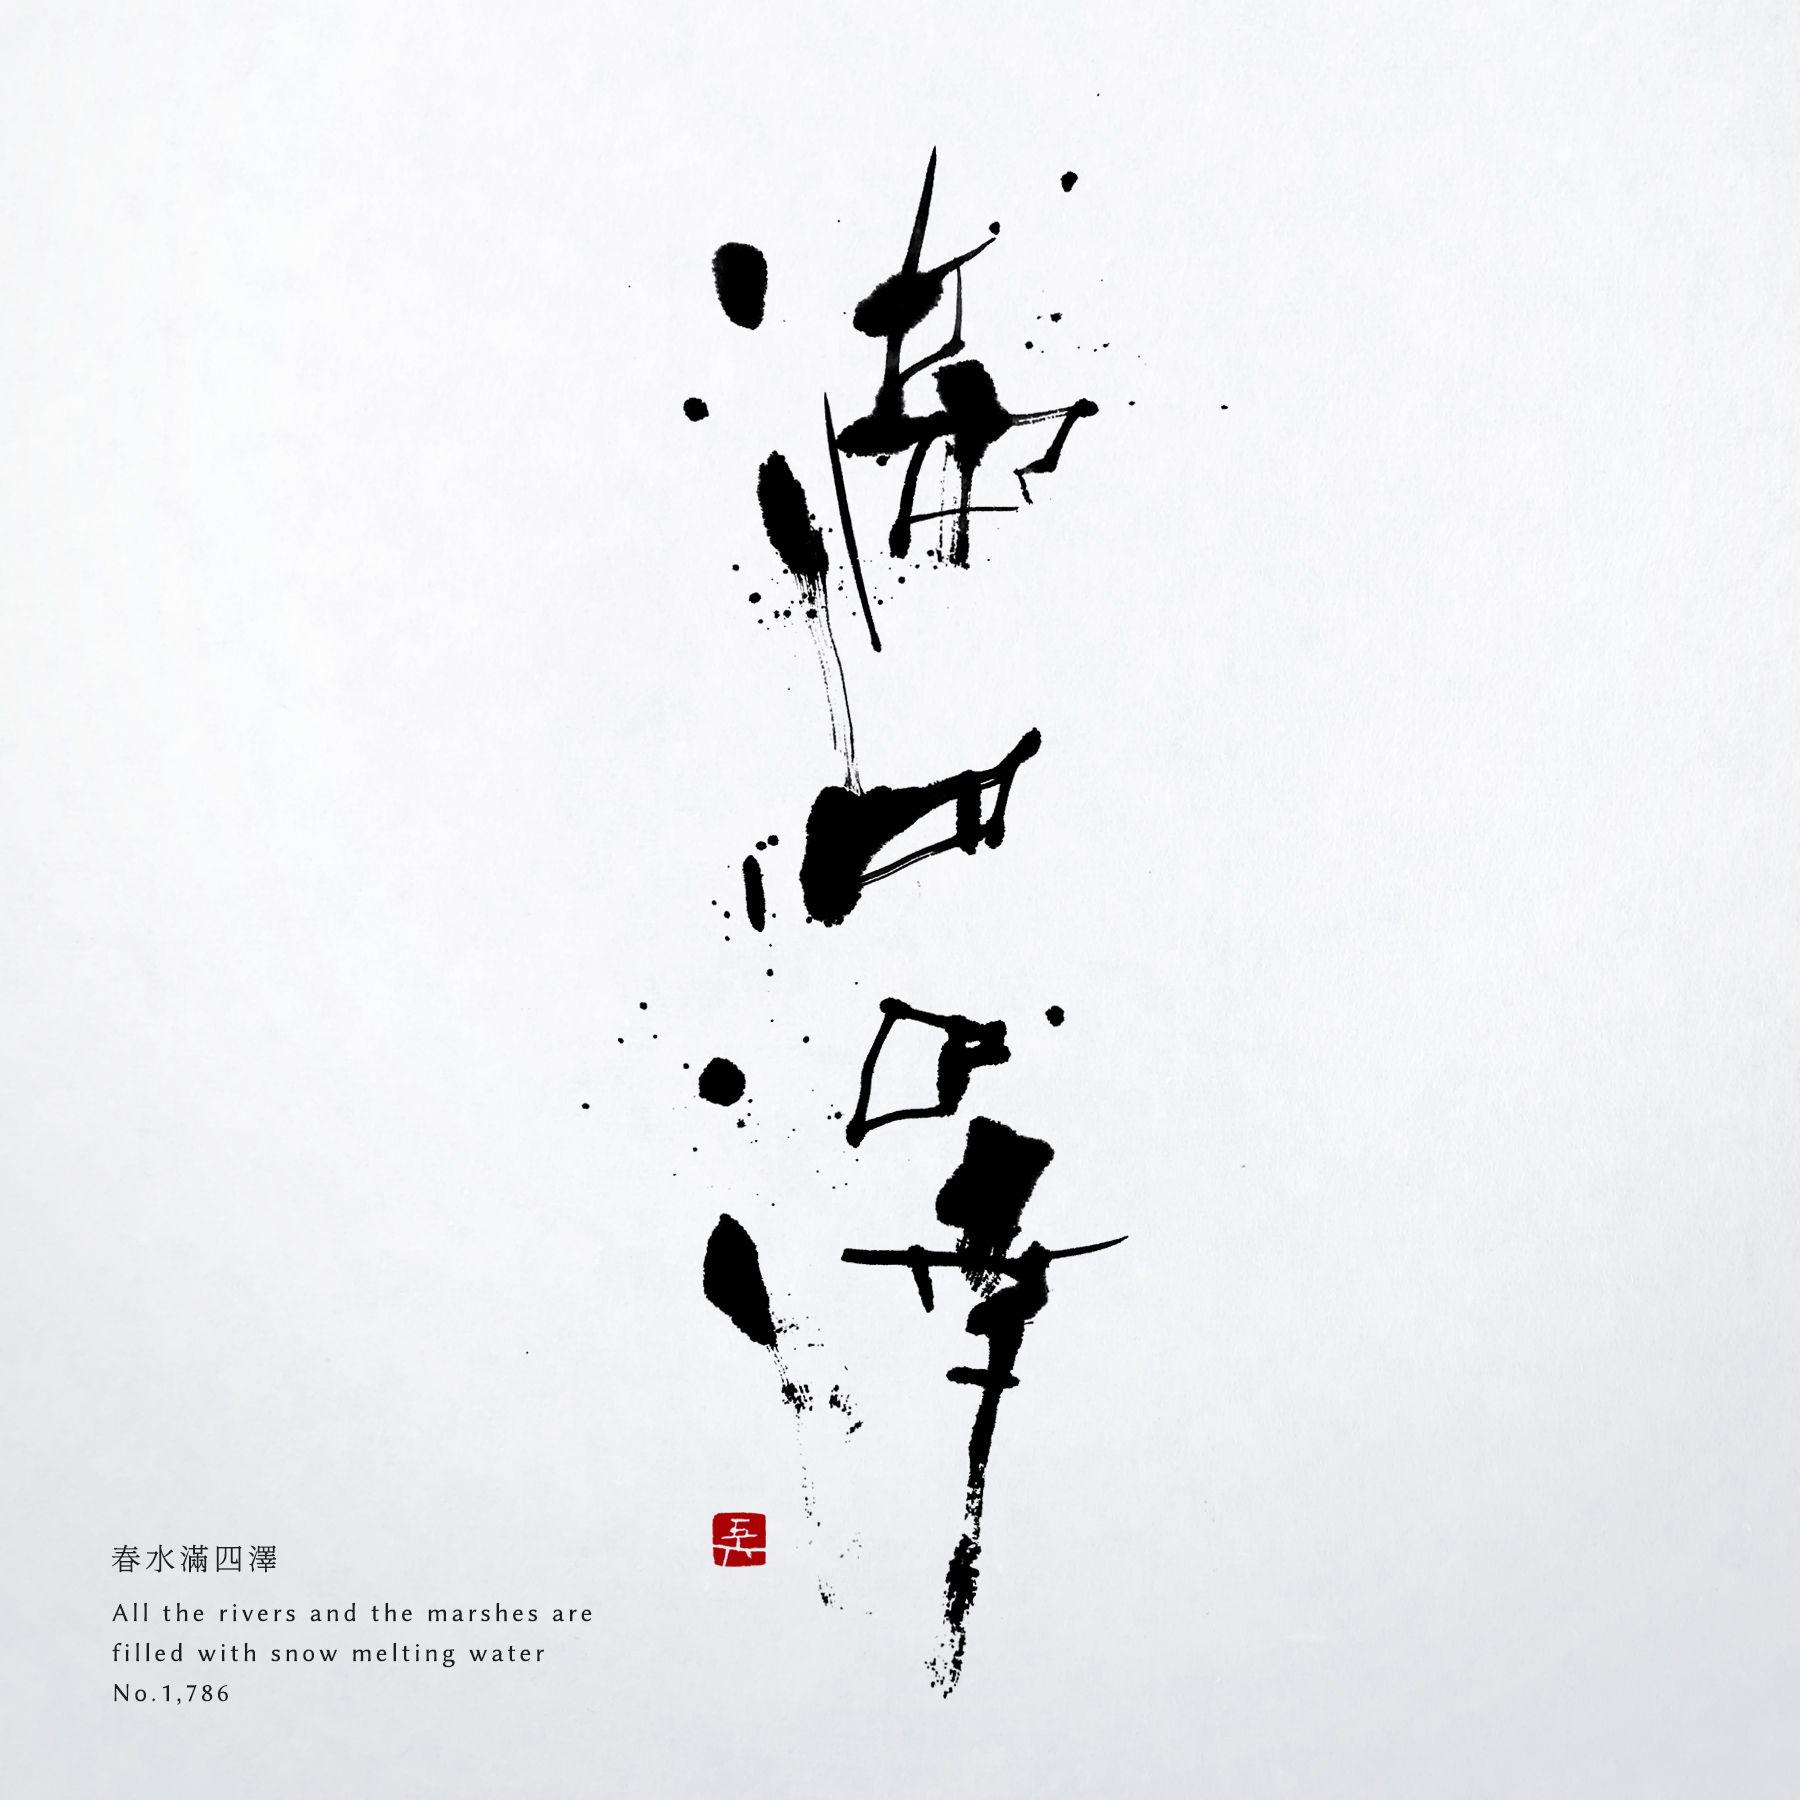 春水満四澤 | filled with spring water 書道作品 japaneseart japanese calligraphy 書家 田川悟郎 Goroh Tagawa